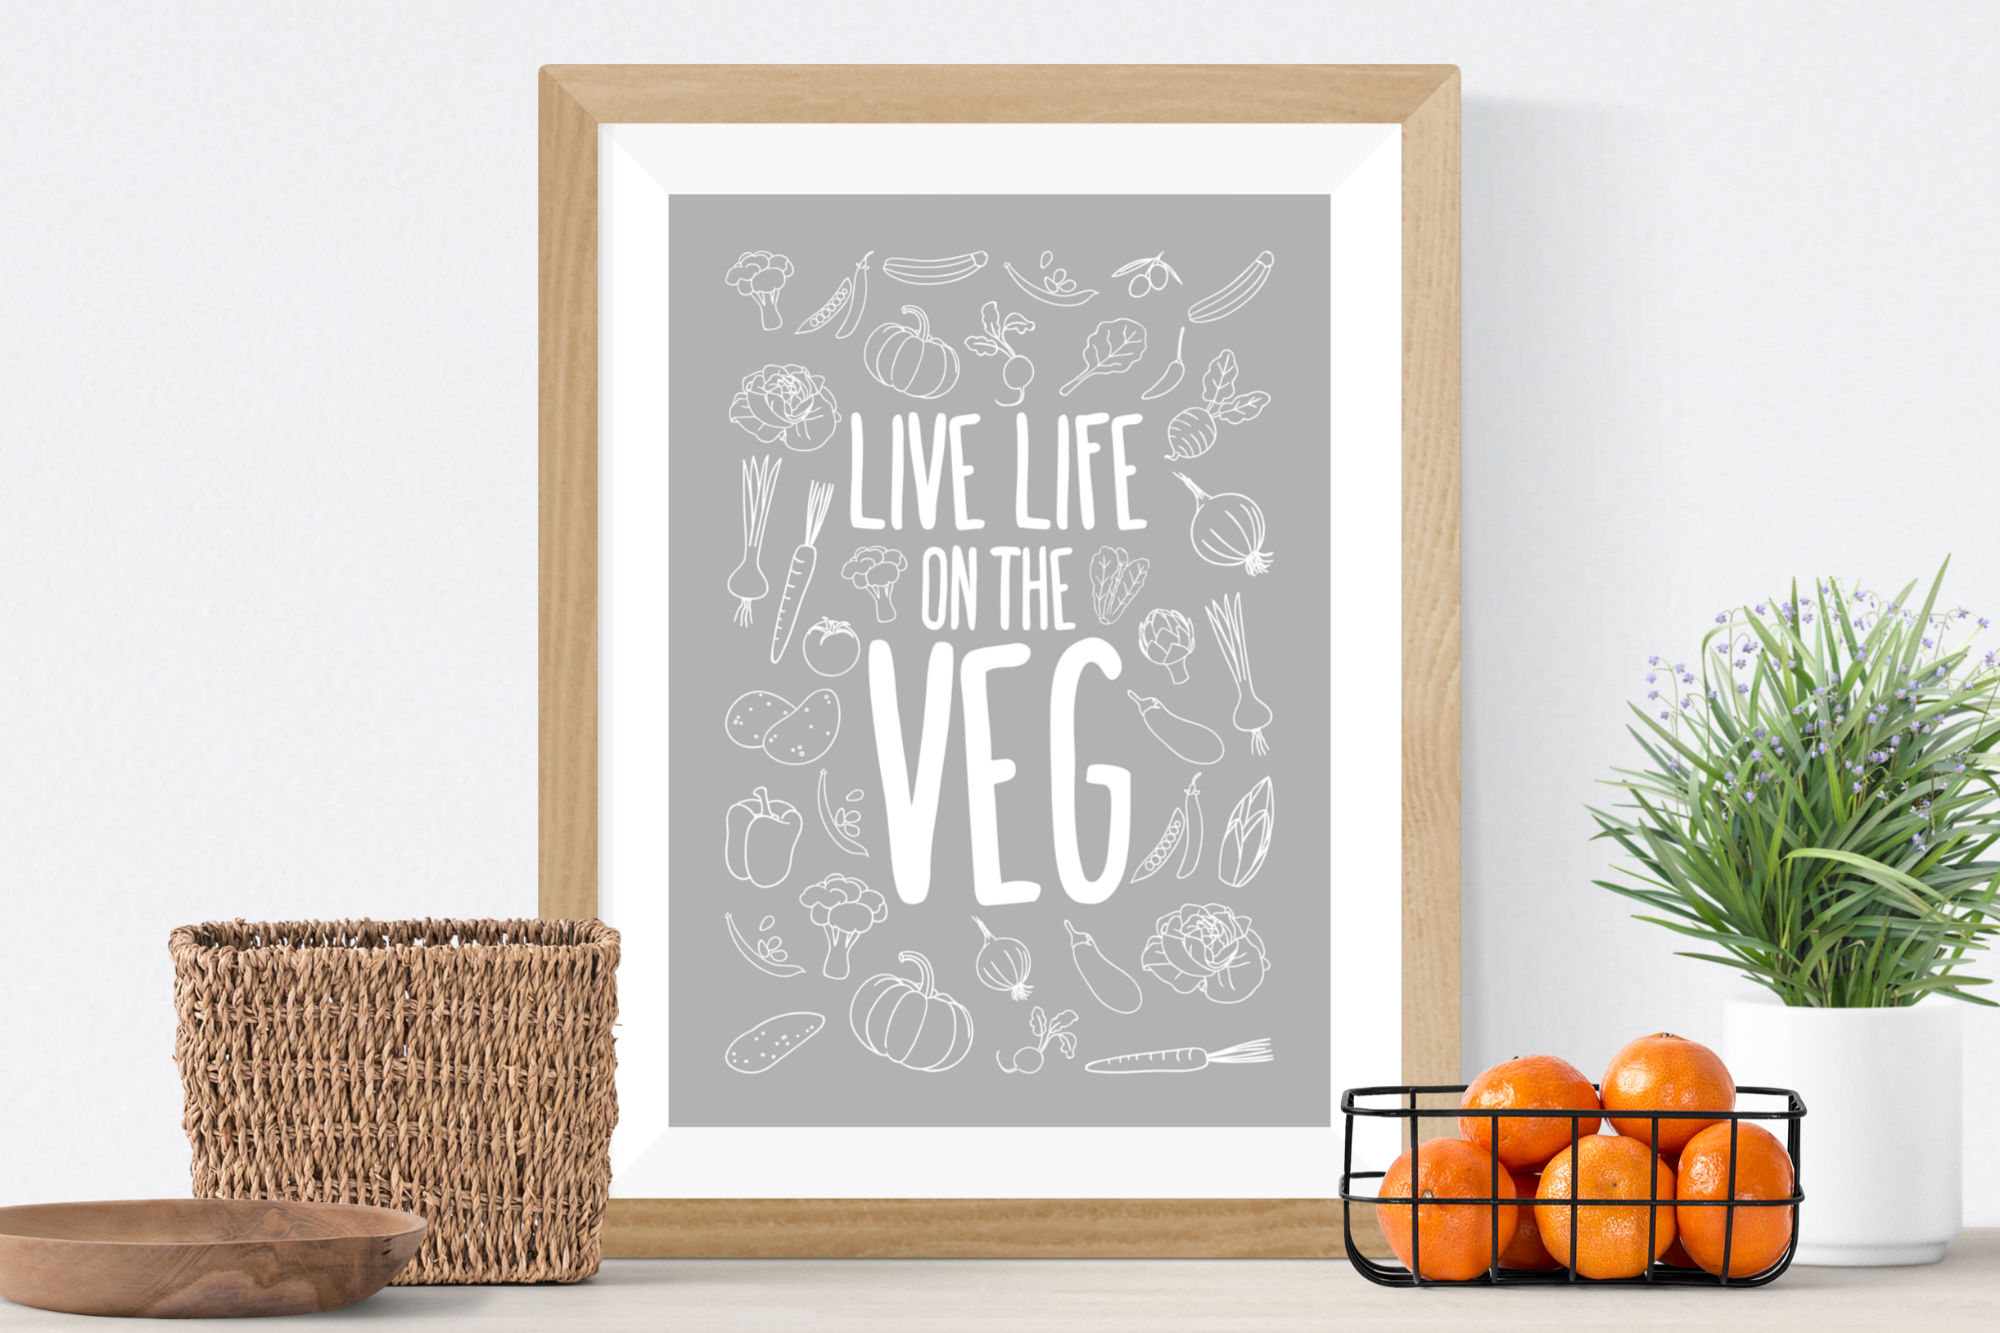 Life-on-the-Veg-3-x-2